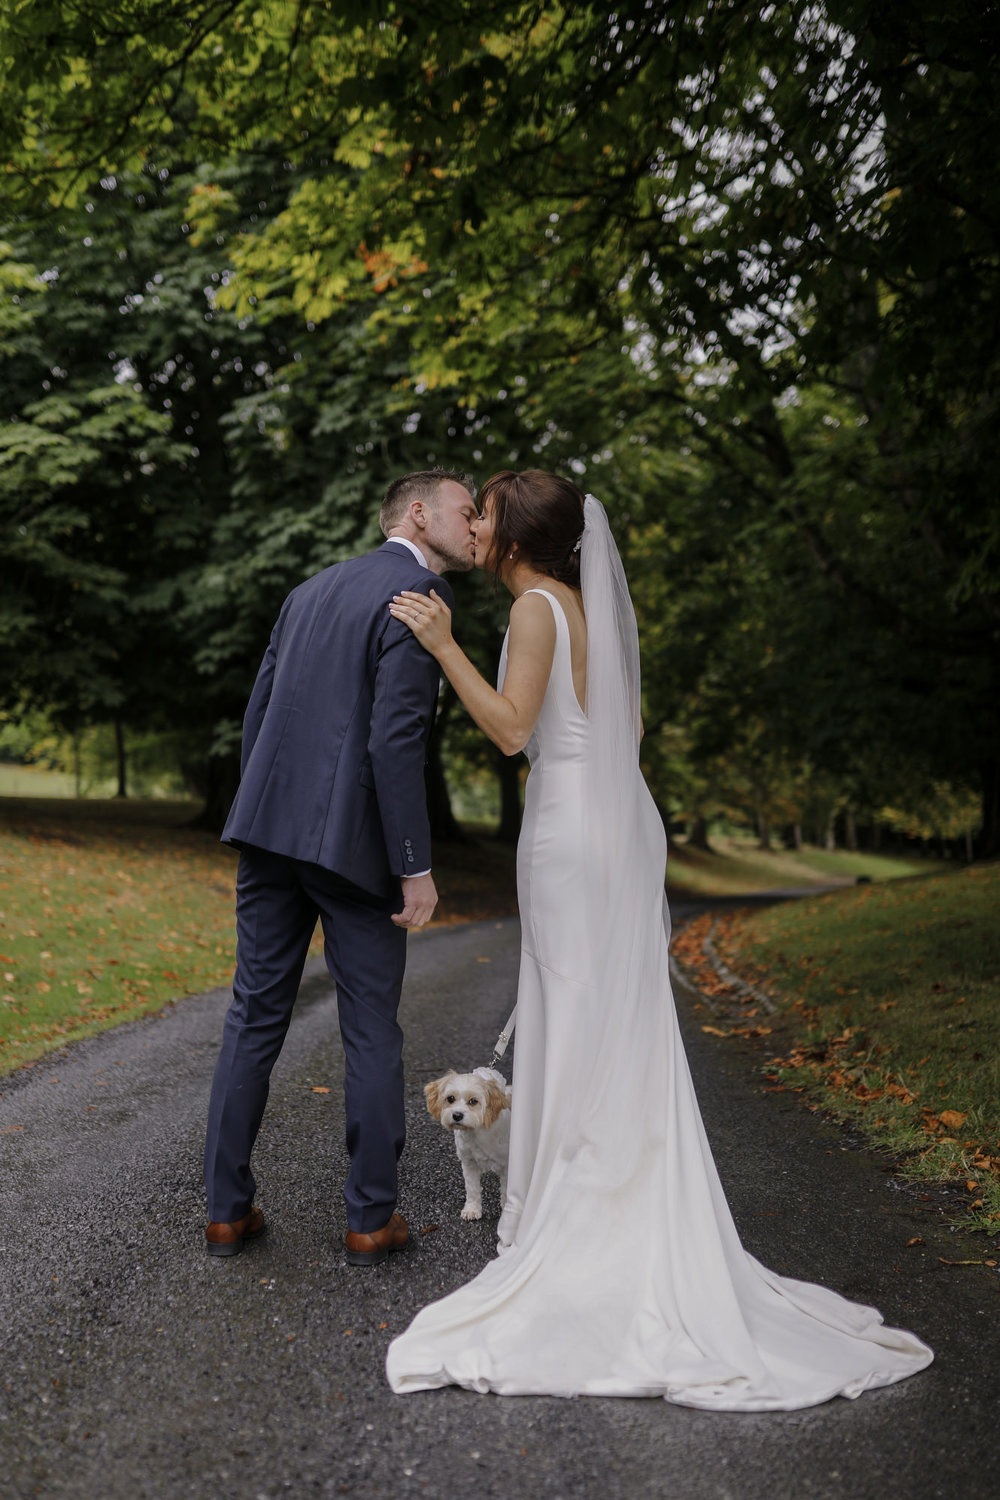 wedding_photographer_kilshane_house_goldenmoments_061.jpg